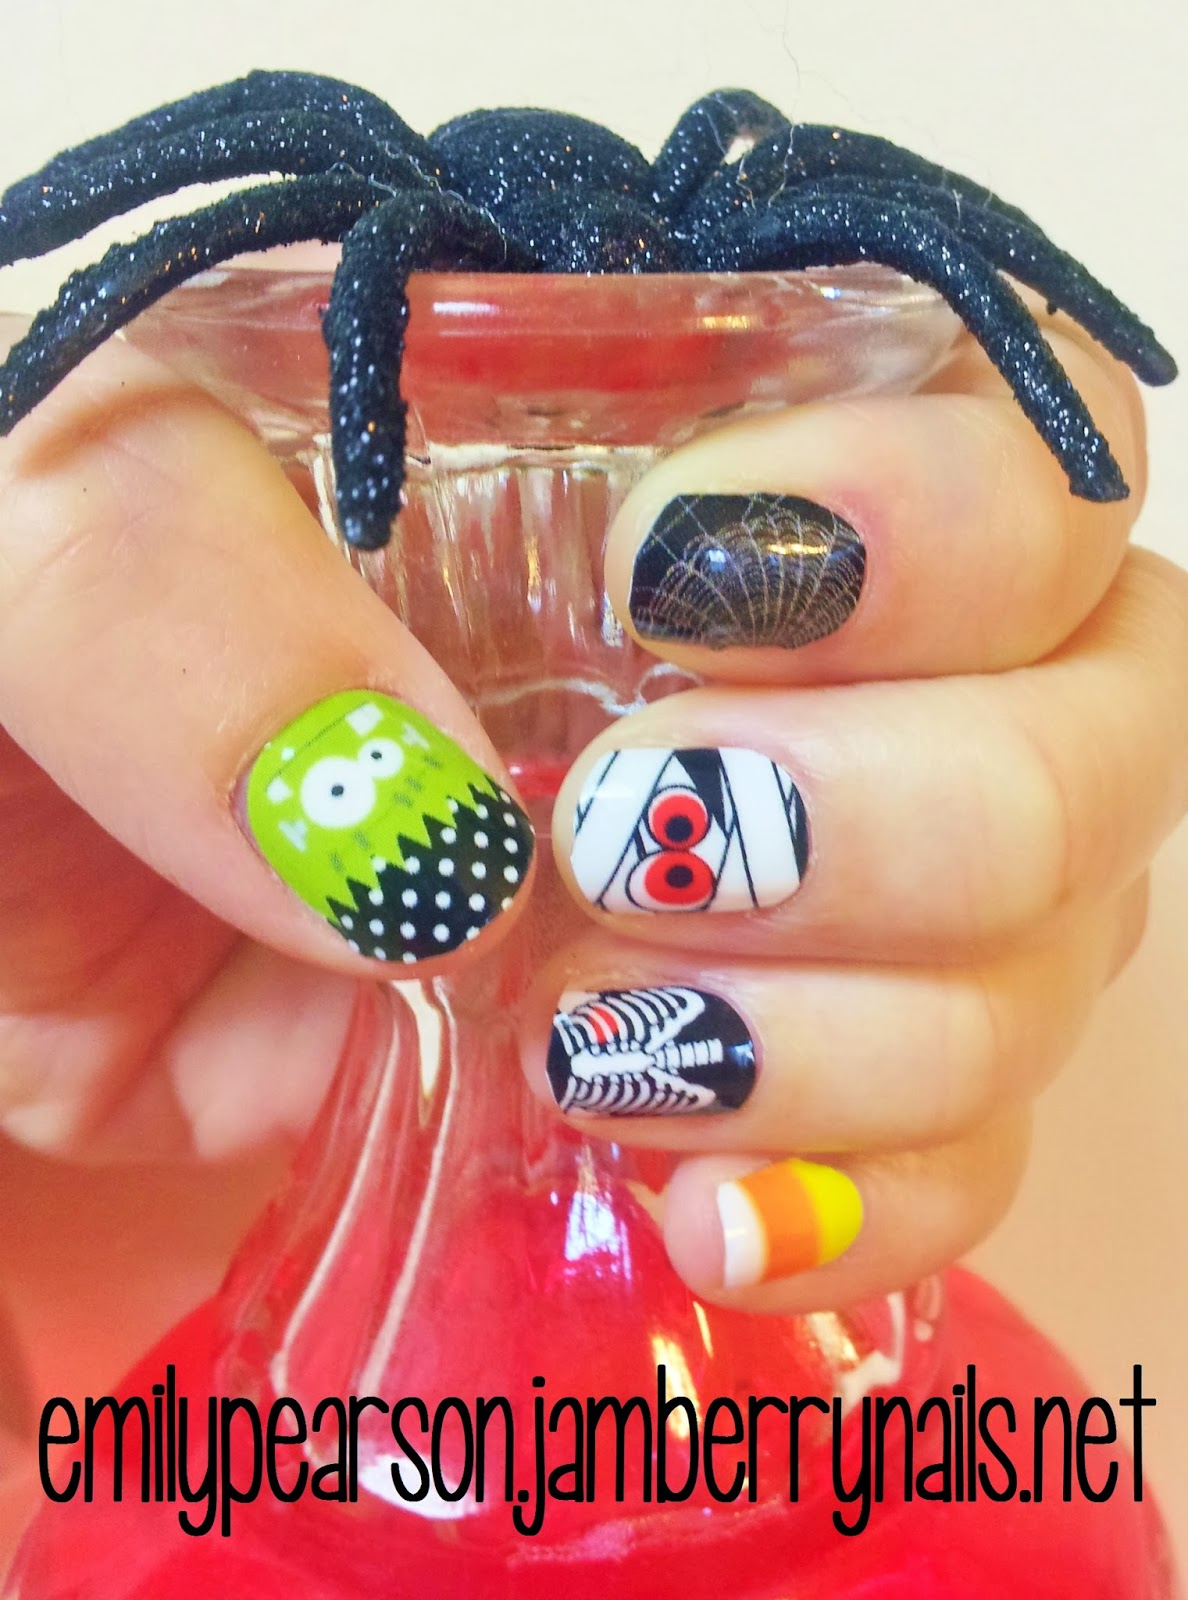 Emily Pearson - Jamberry Independent Nail Consultant: HAPPY HALLOWEEN!!